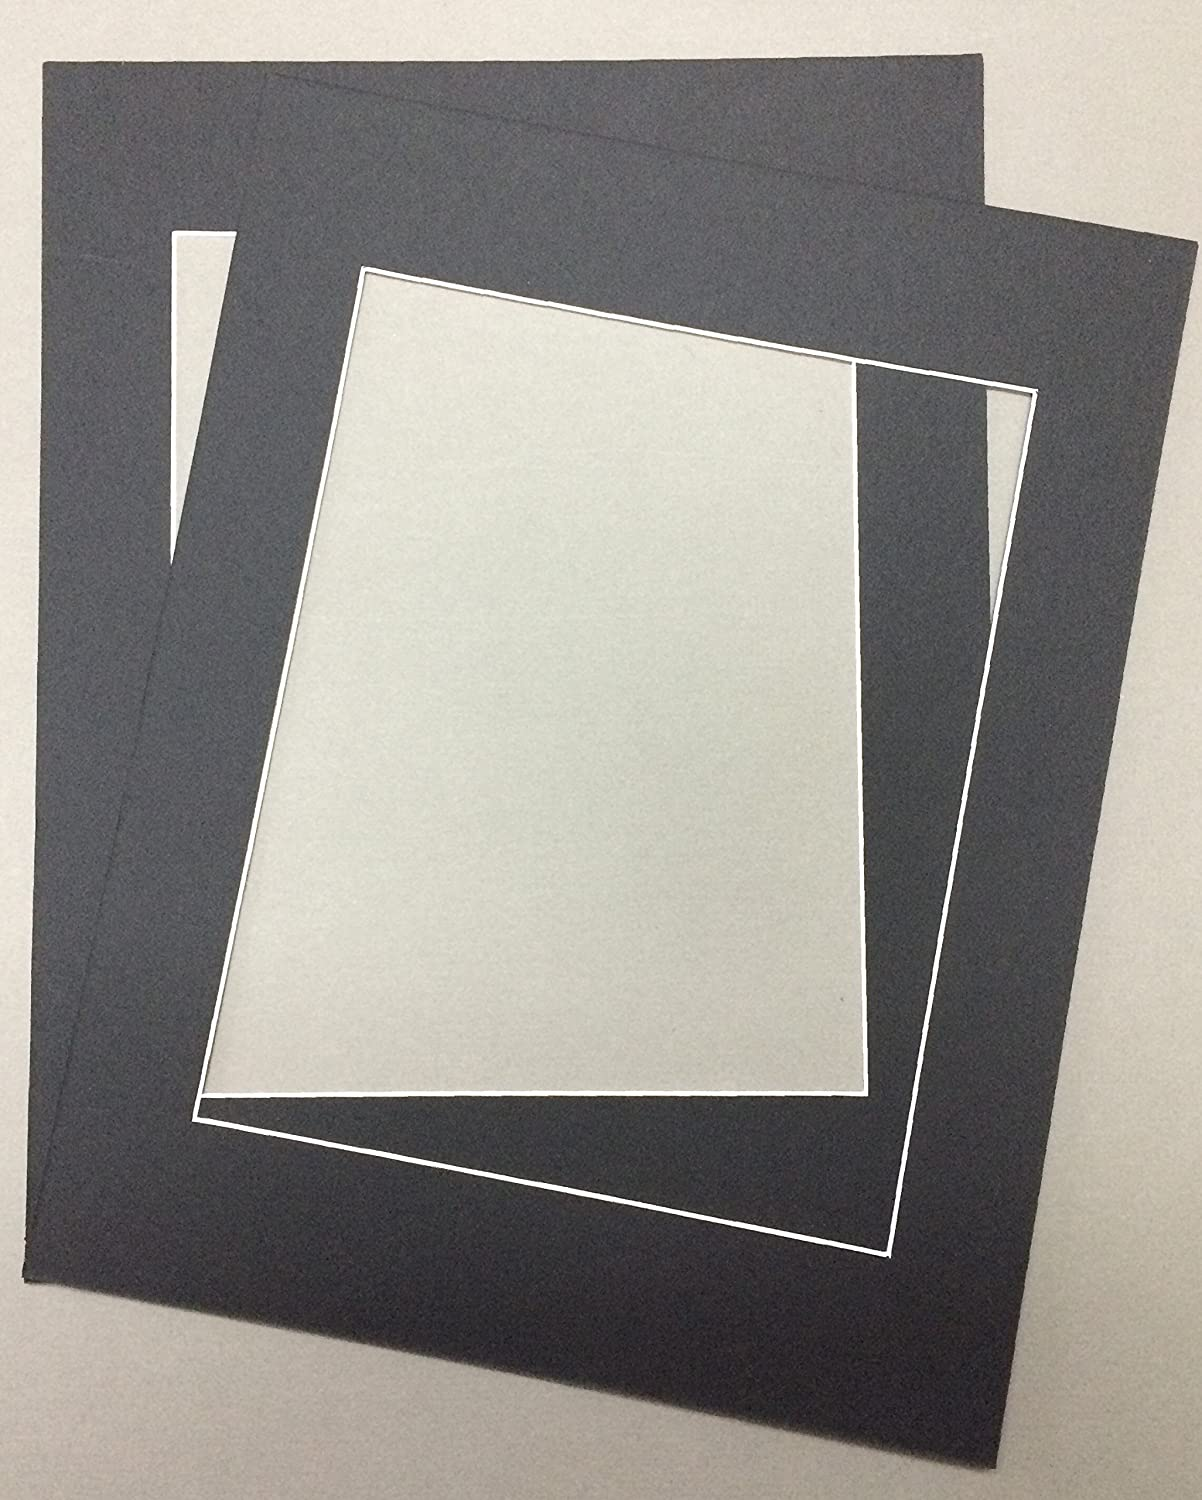 Pack of 2 24x36 Black Picture Mats with White Core, for 20x30 Pictures Bux1 Picture Matting